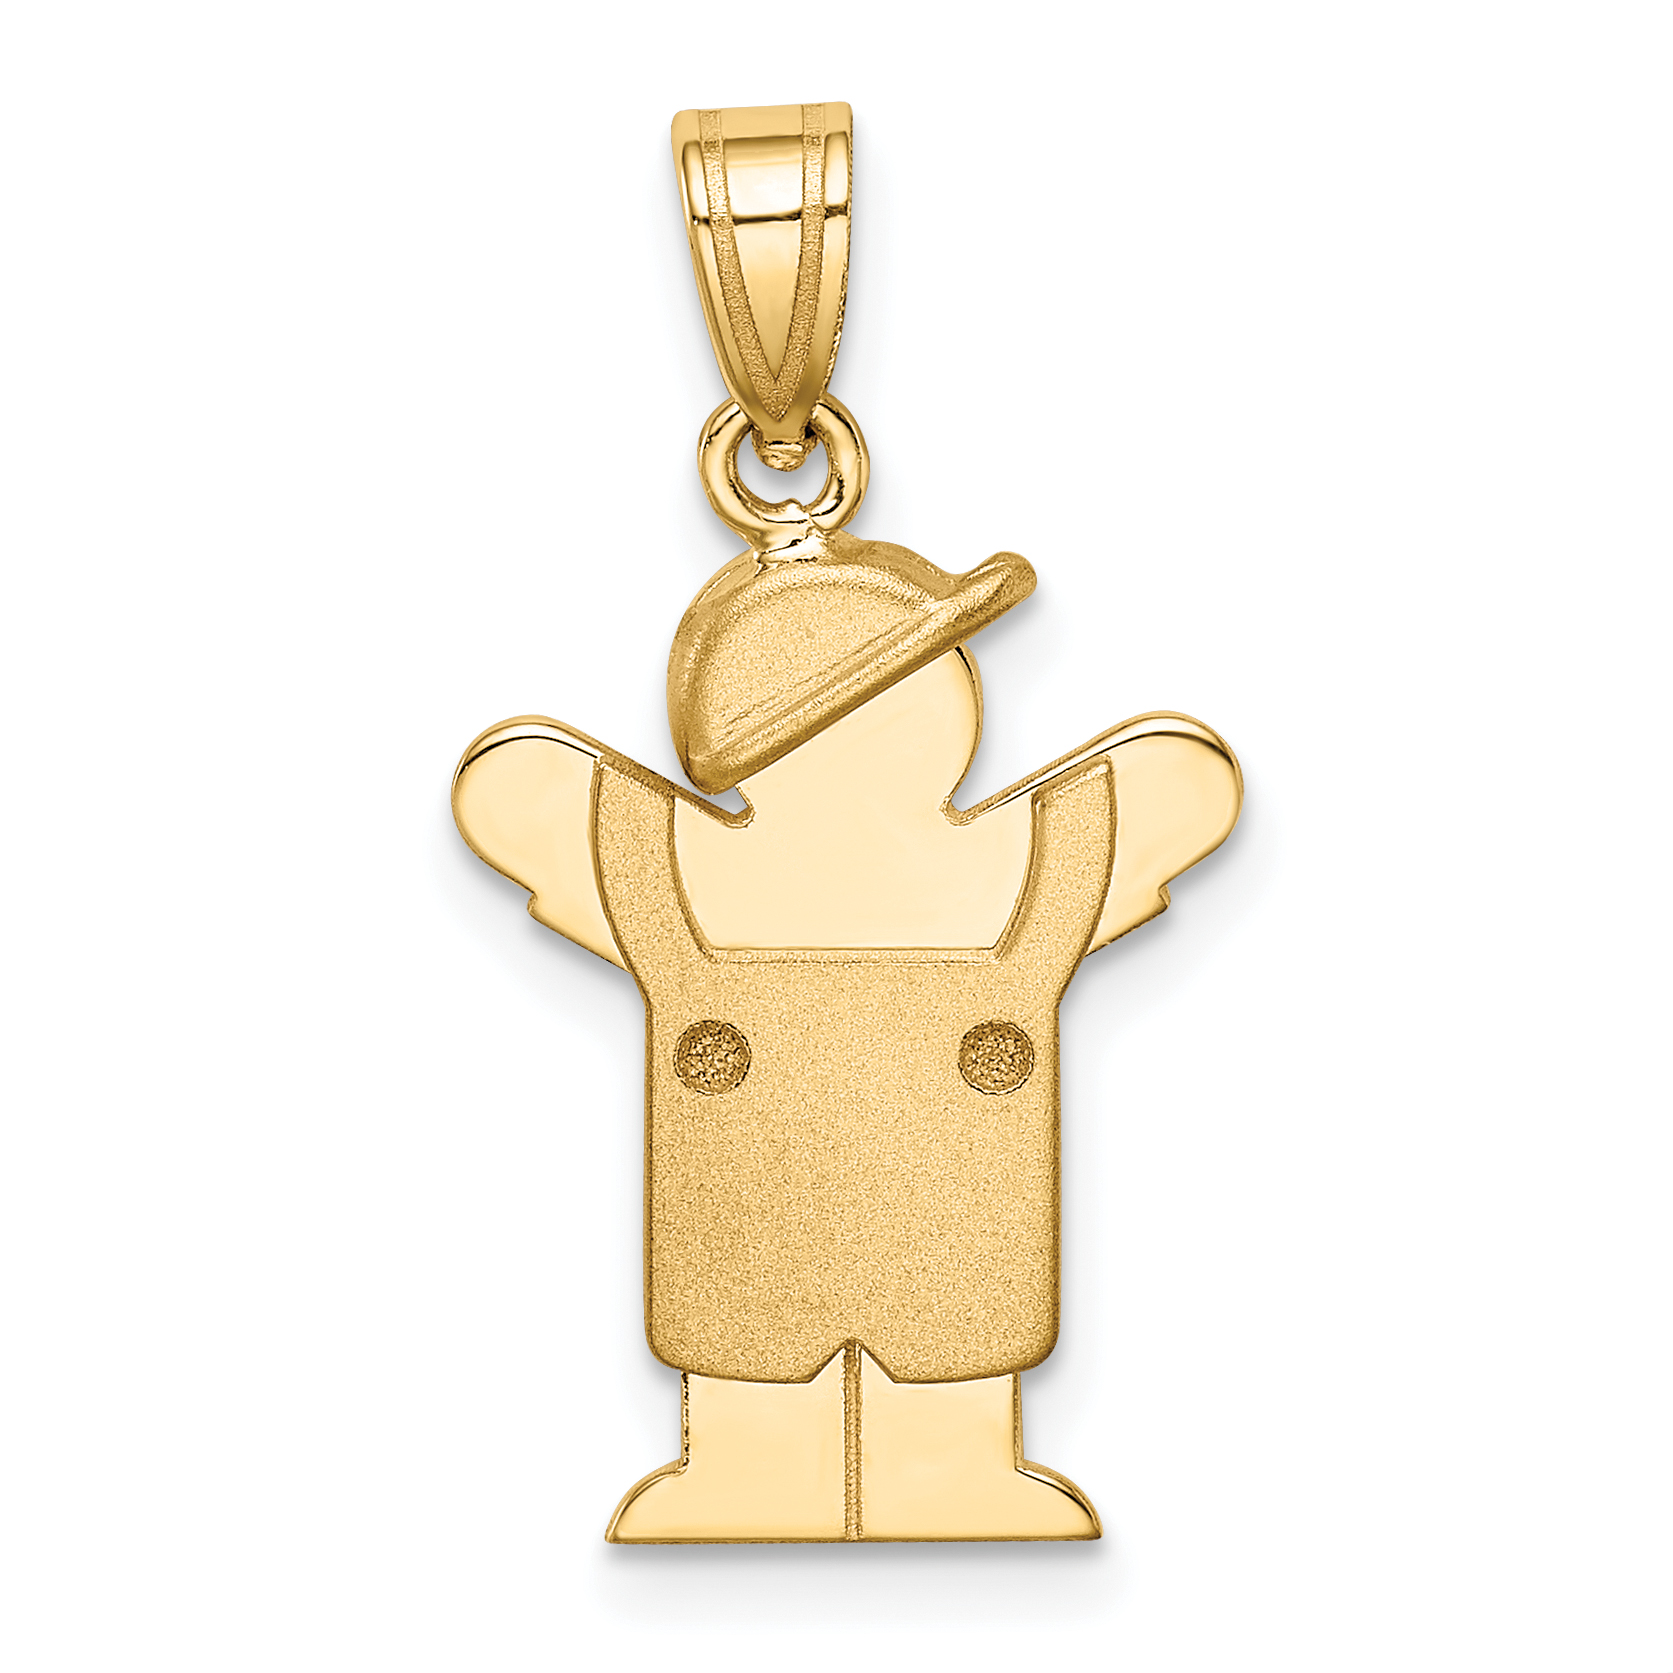 14K Yellow Gold Solid Engravable Boy in Overalls with Hat on Left Charm - image 2 of 2